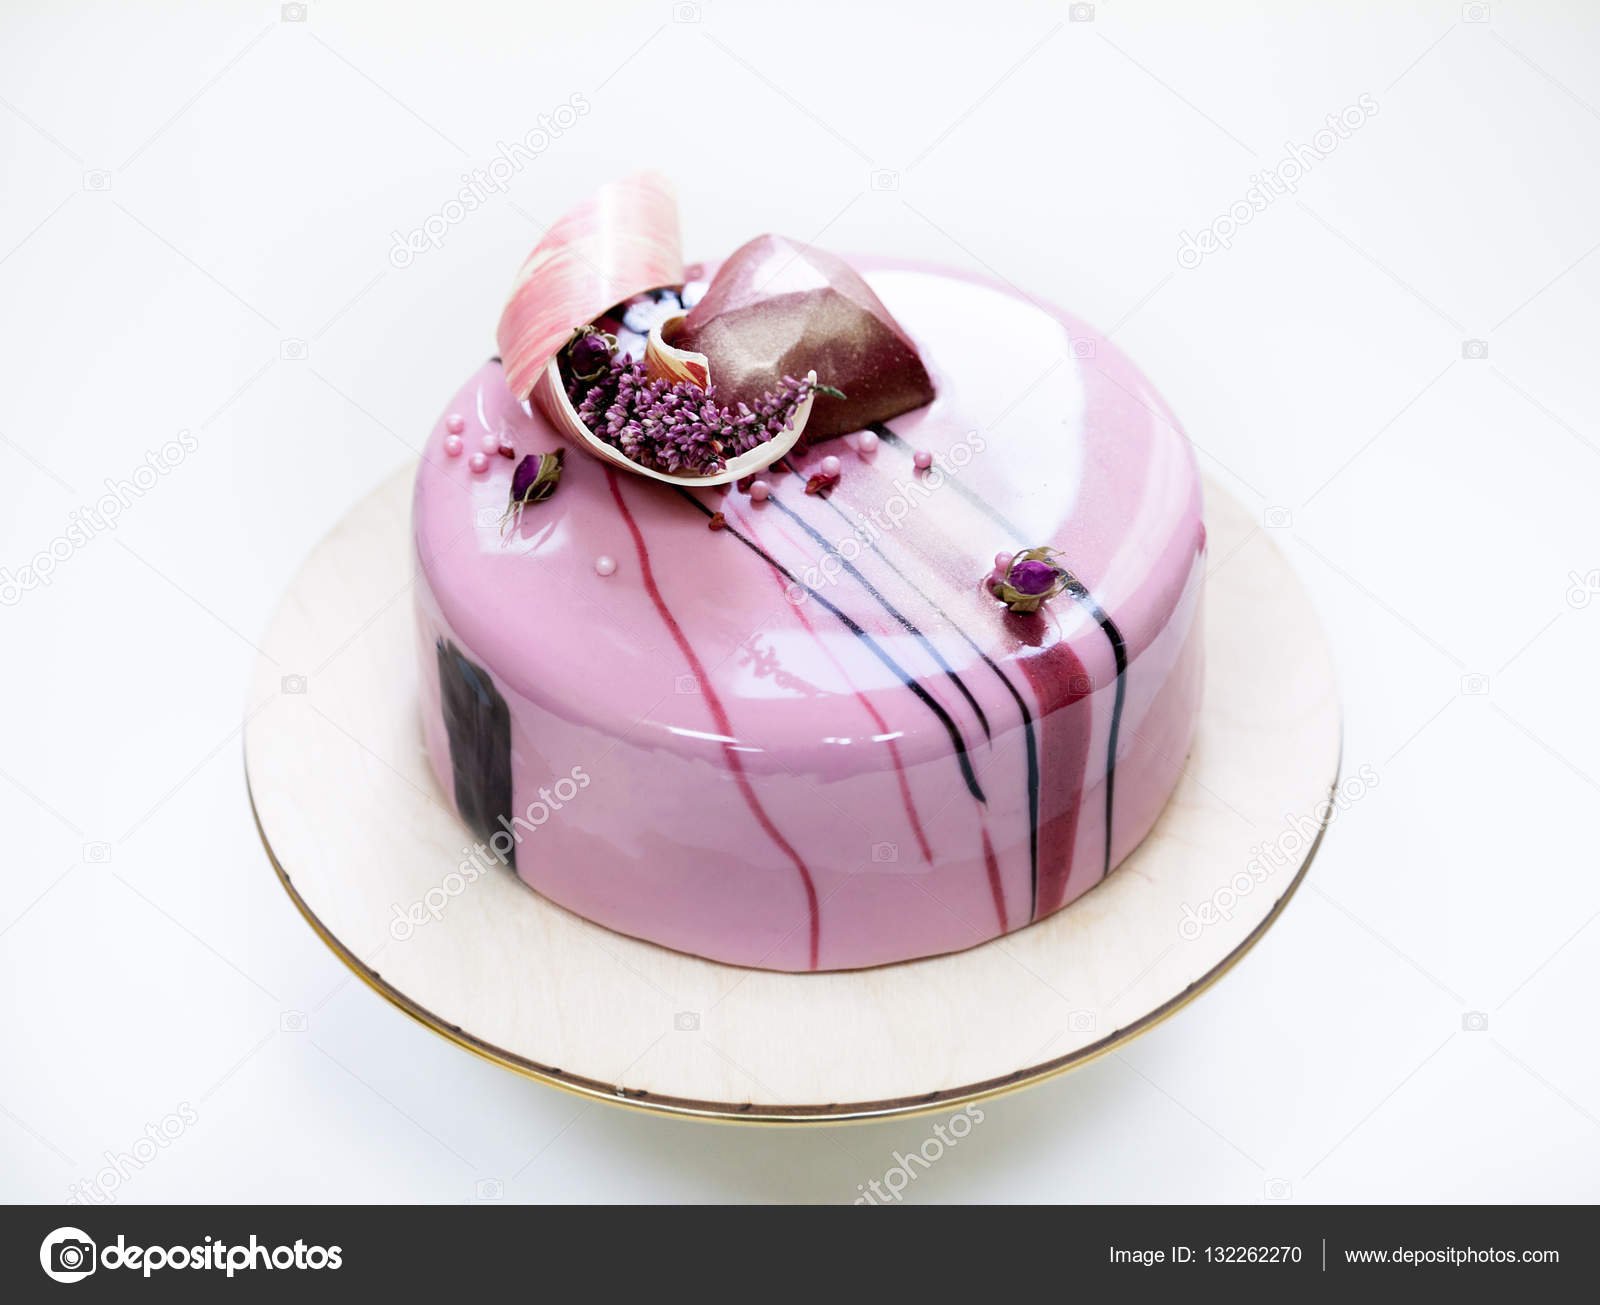 Minimalistic Pink Mousse Cake With Coated With Mirror